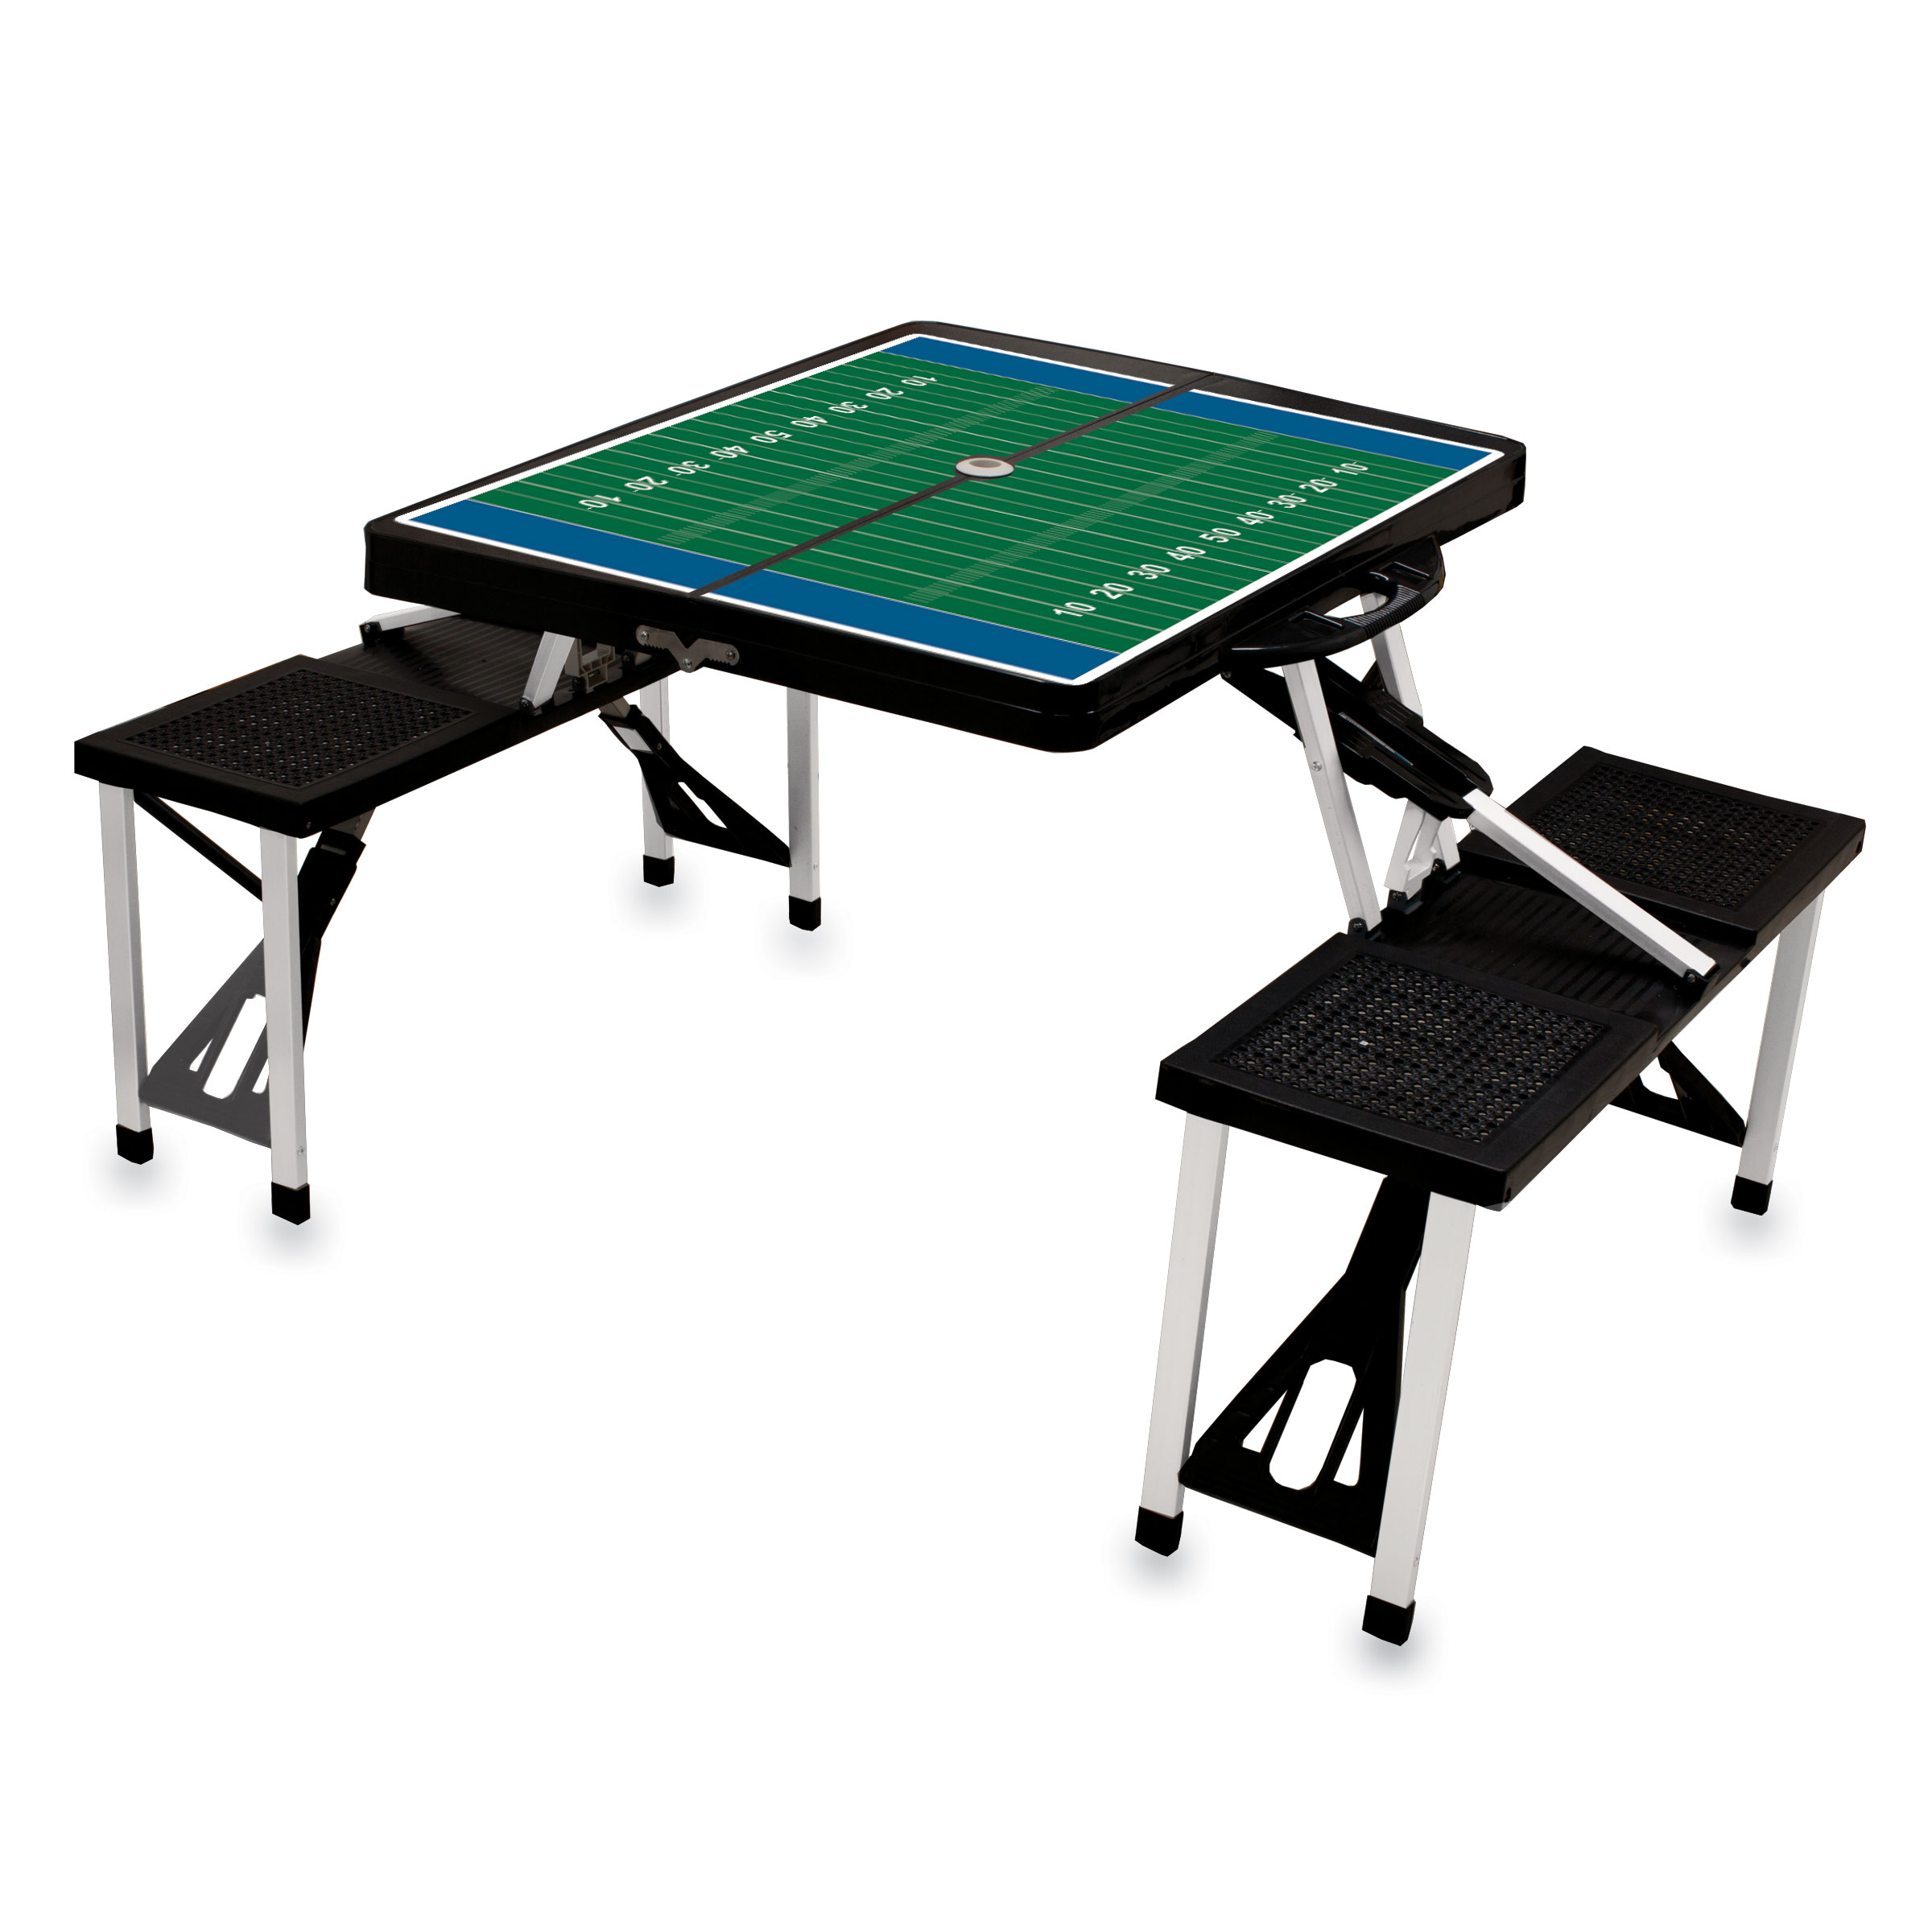 Picnic Table Portable Table And Seats Black